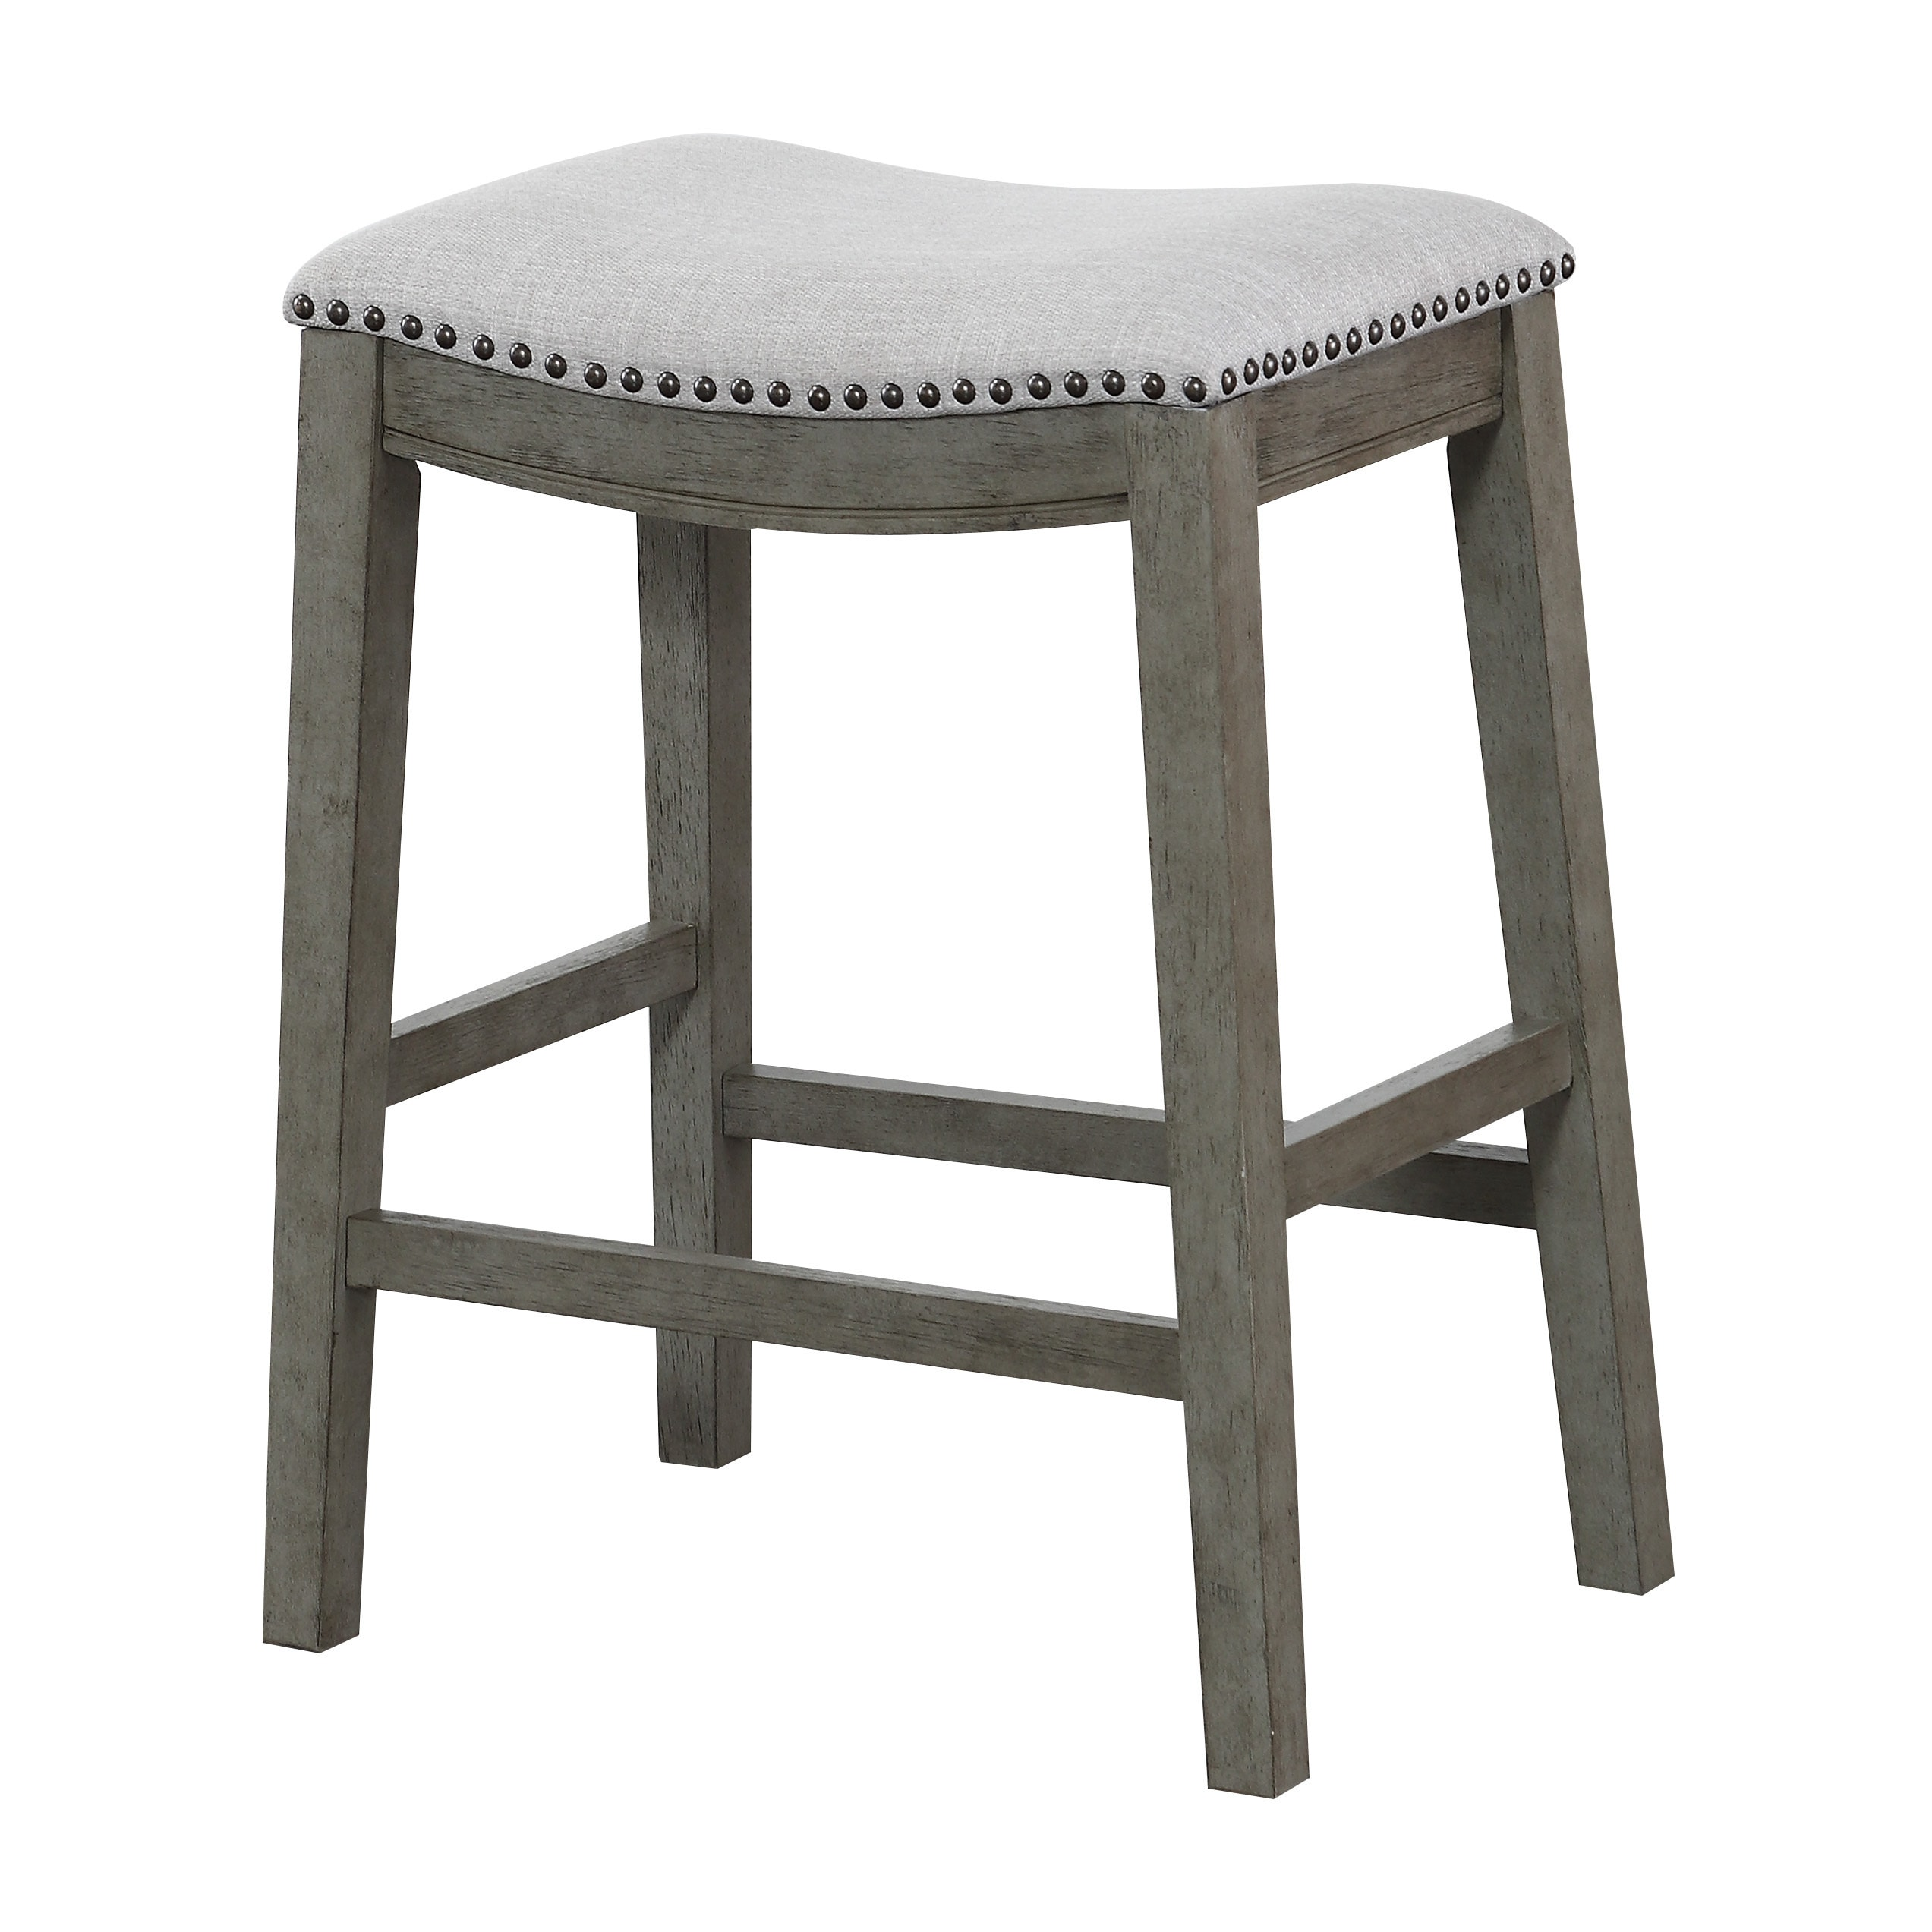 Shop The Gray Barn Arbakka Grey 24 Inch Saddle Bar Stools Set Of 2